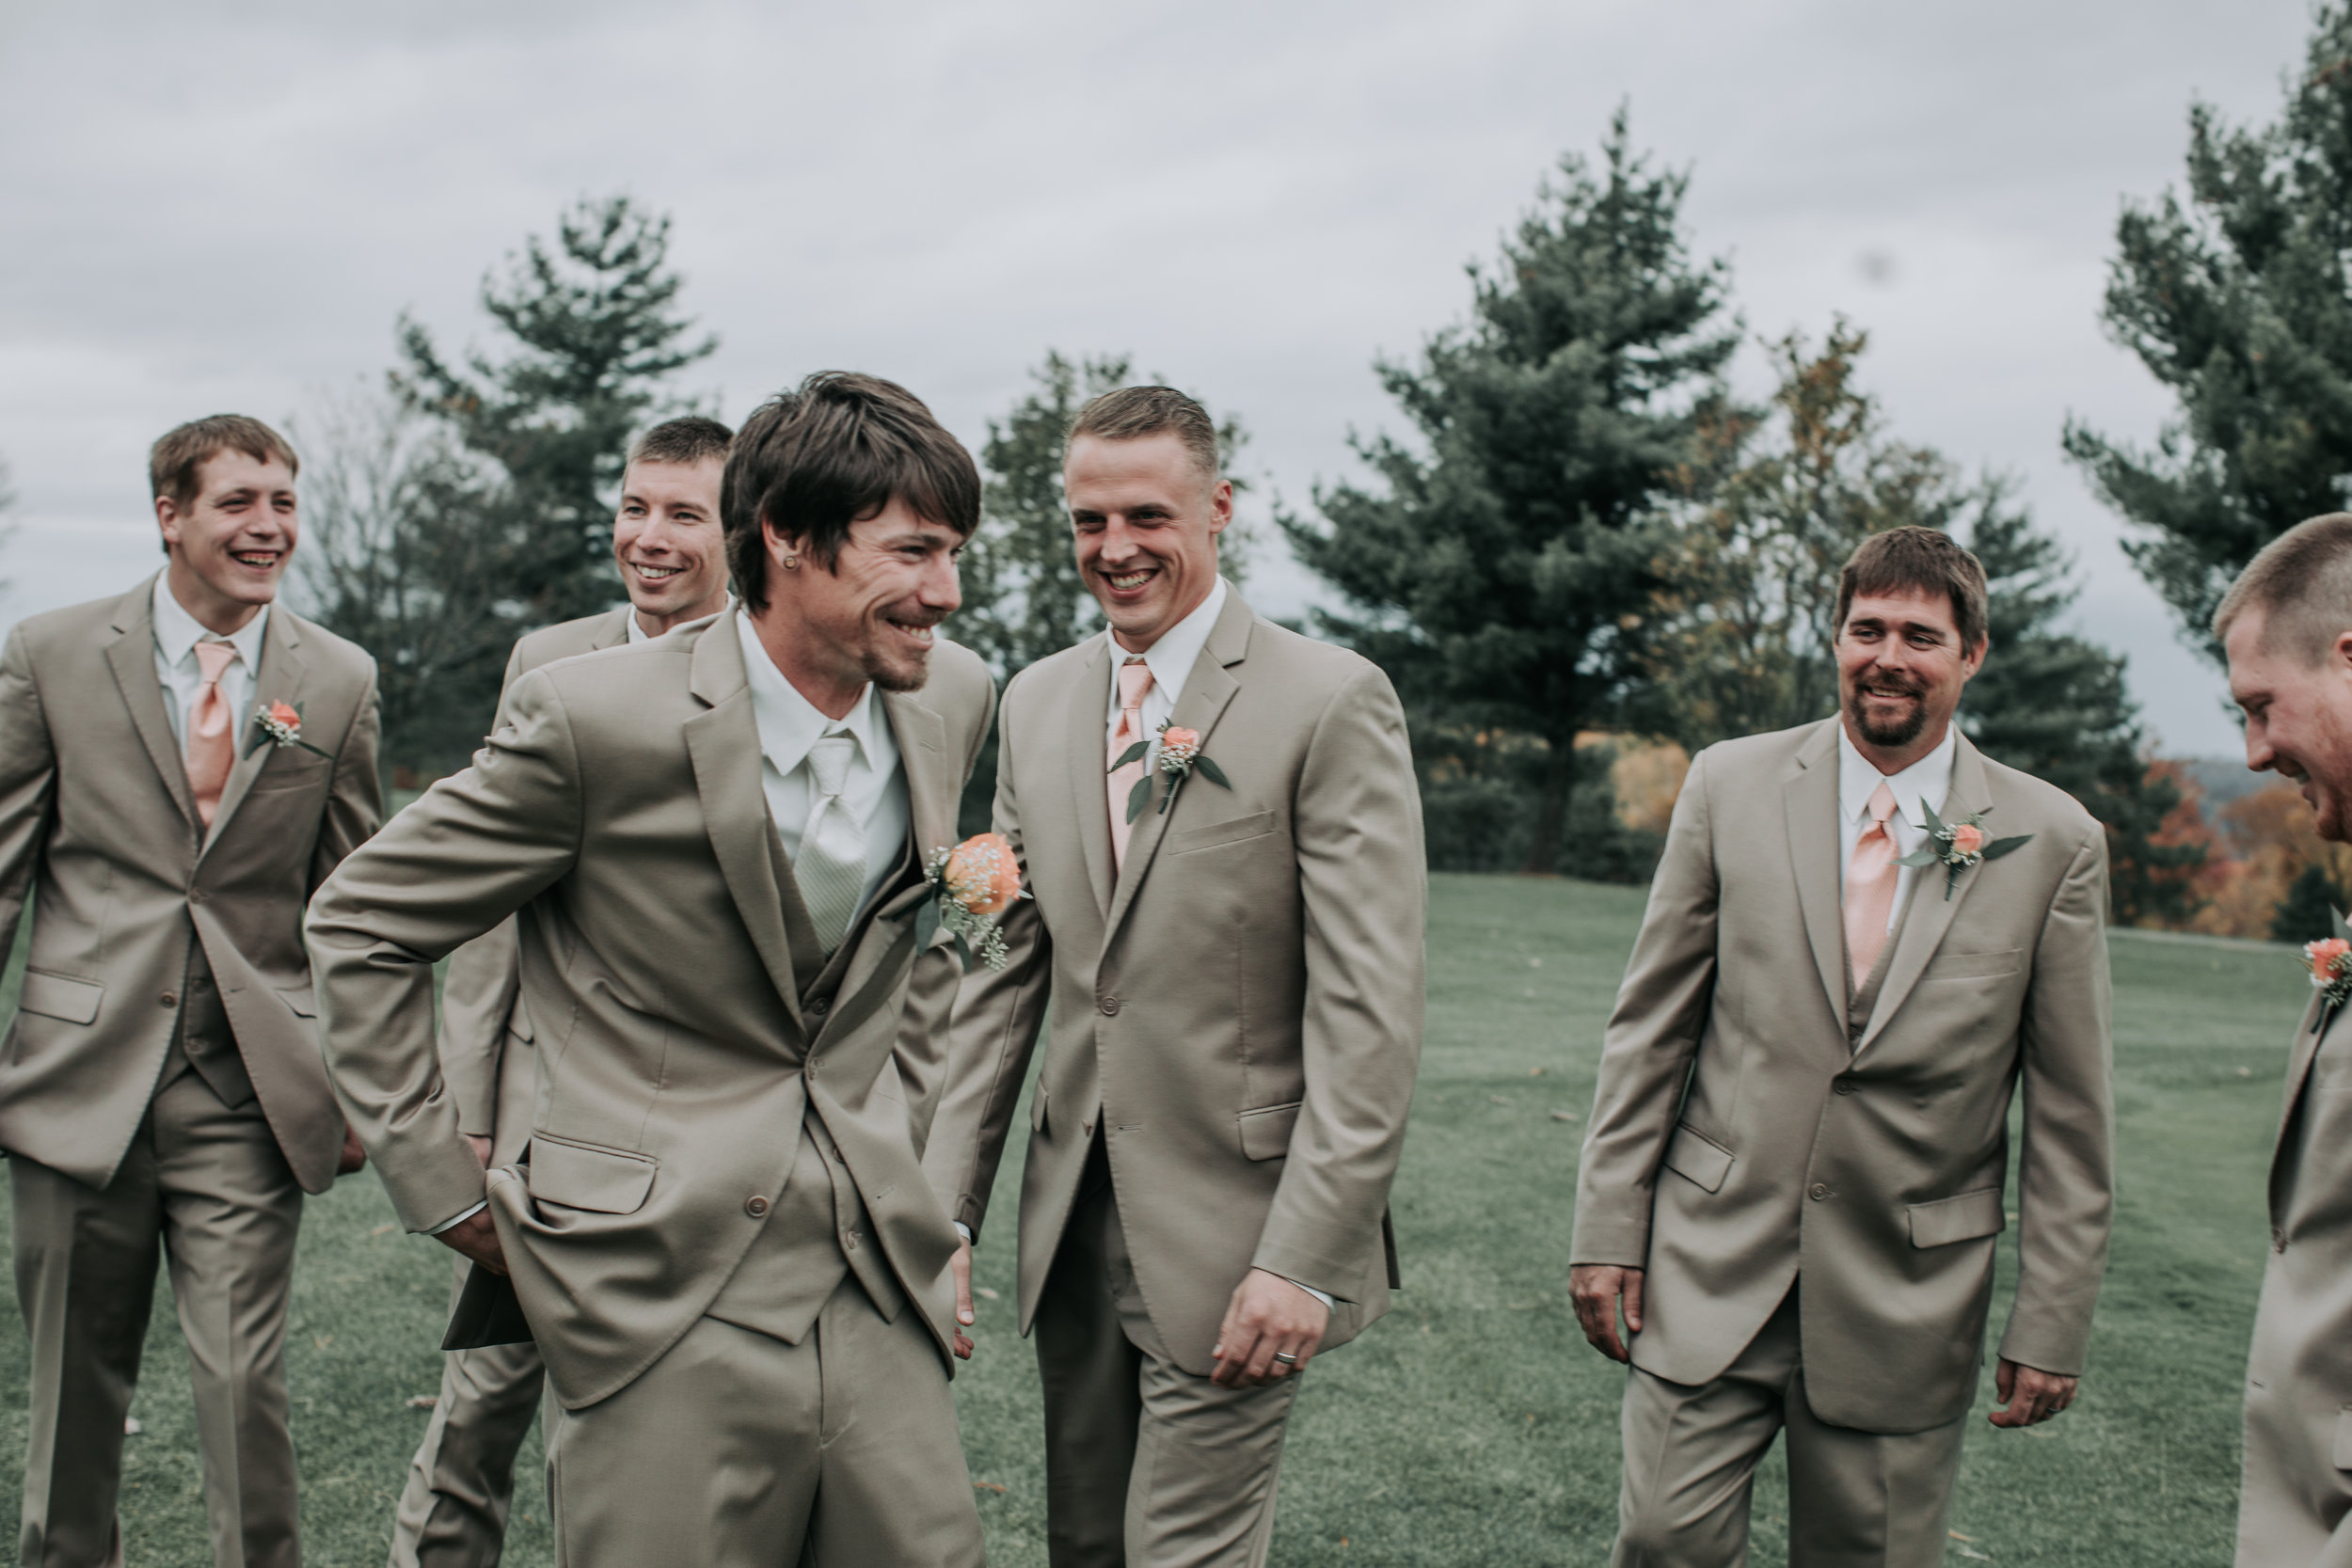 Groomsmen - Hove Photography LLC